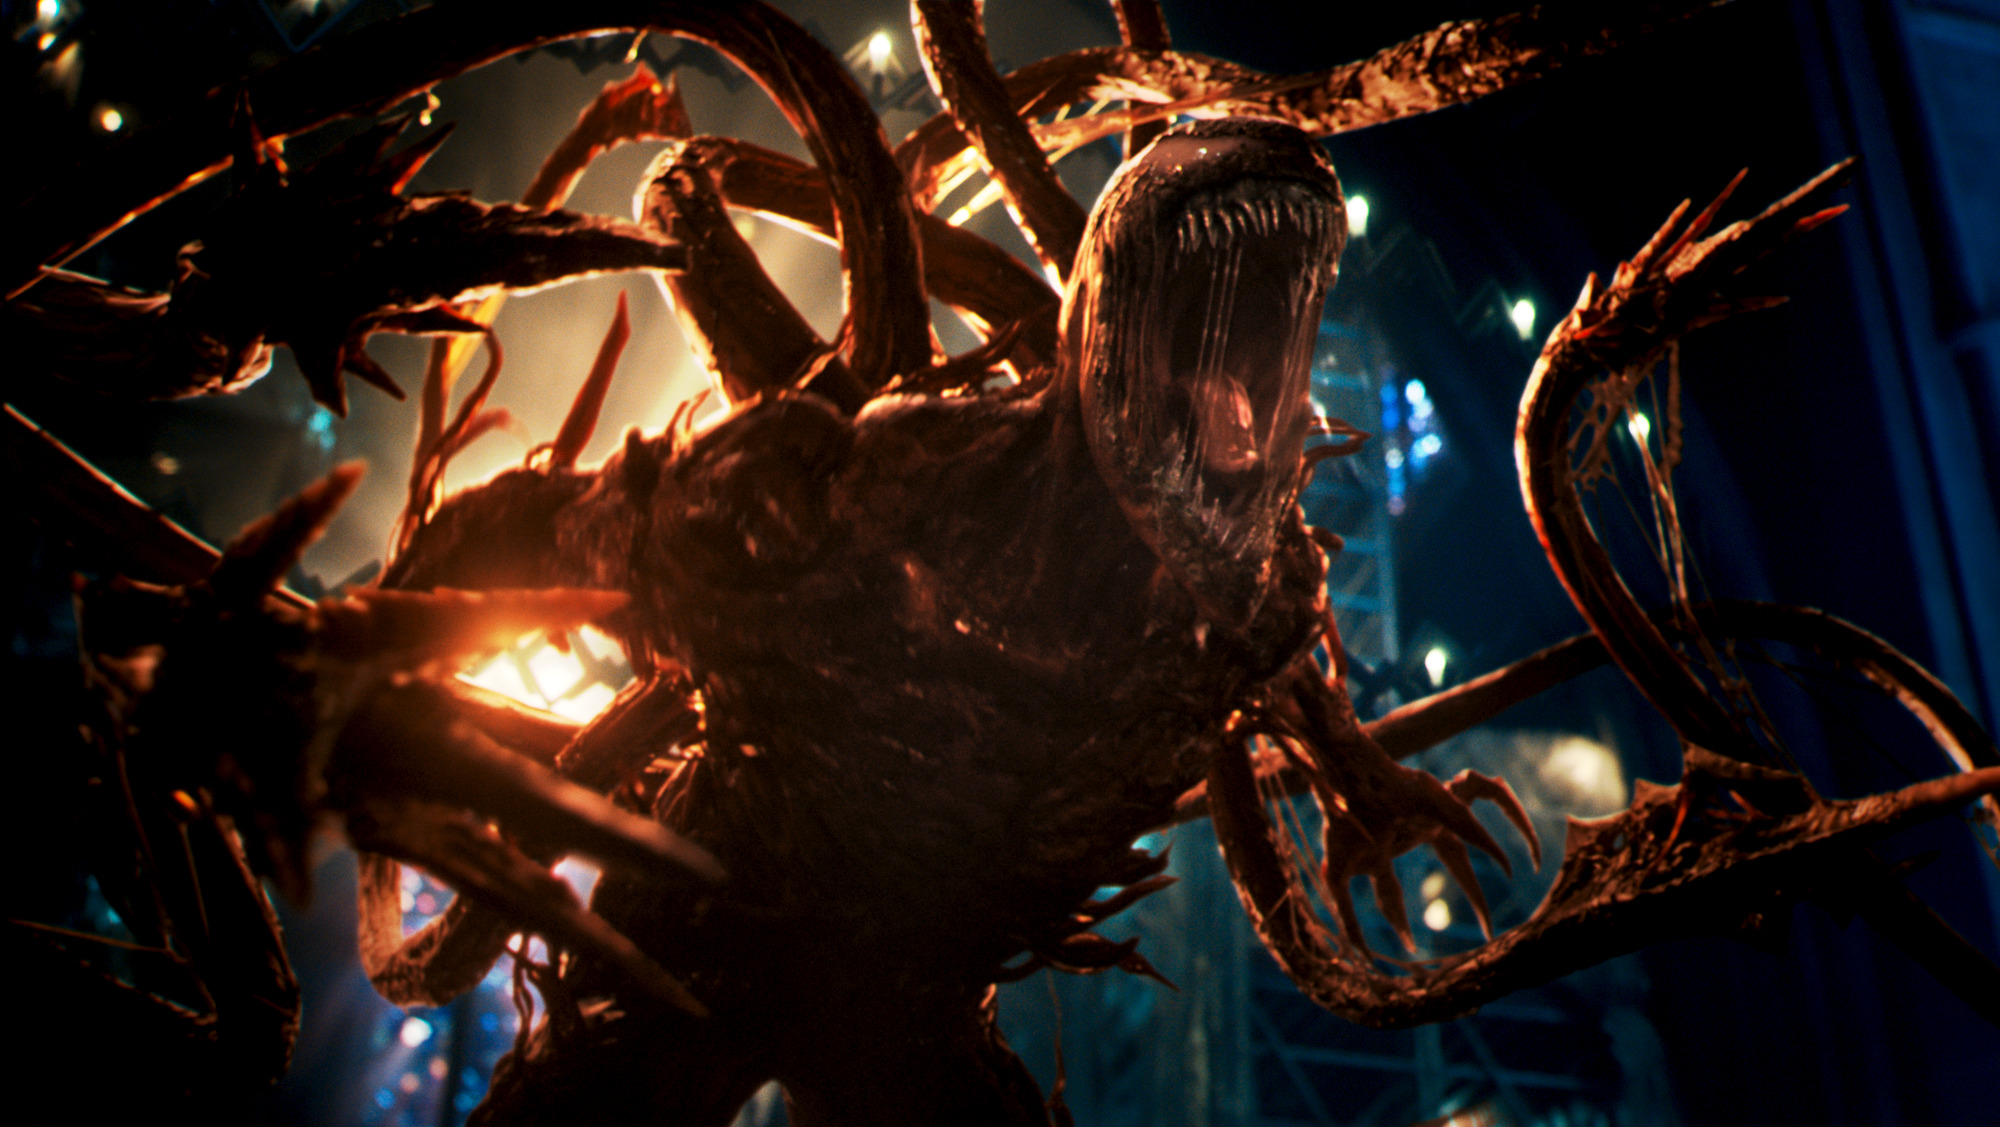 Carnage in VENOM: LET THERE BE CARNAGE.